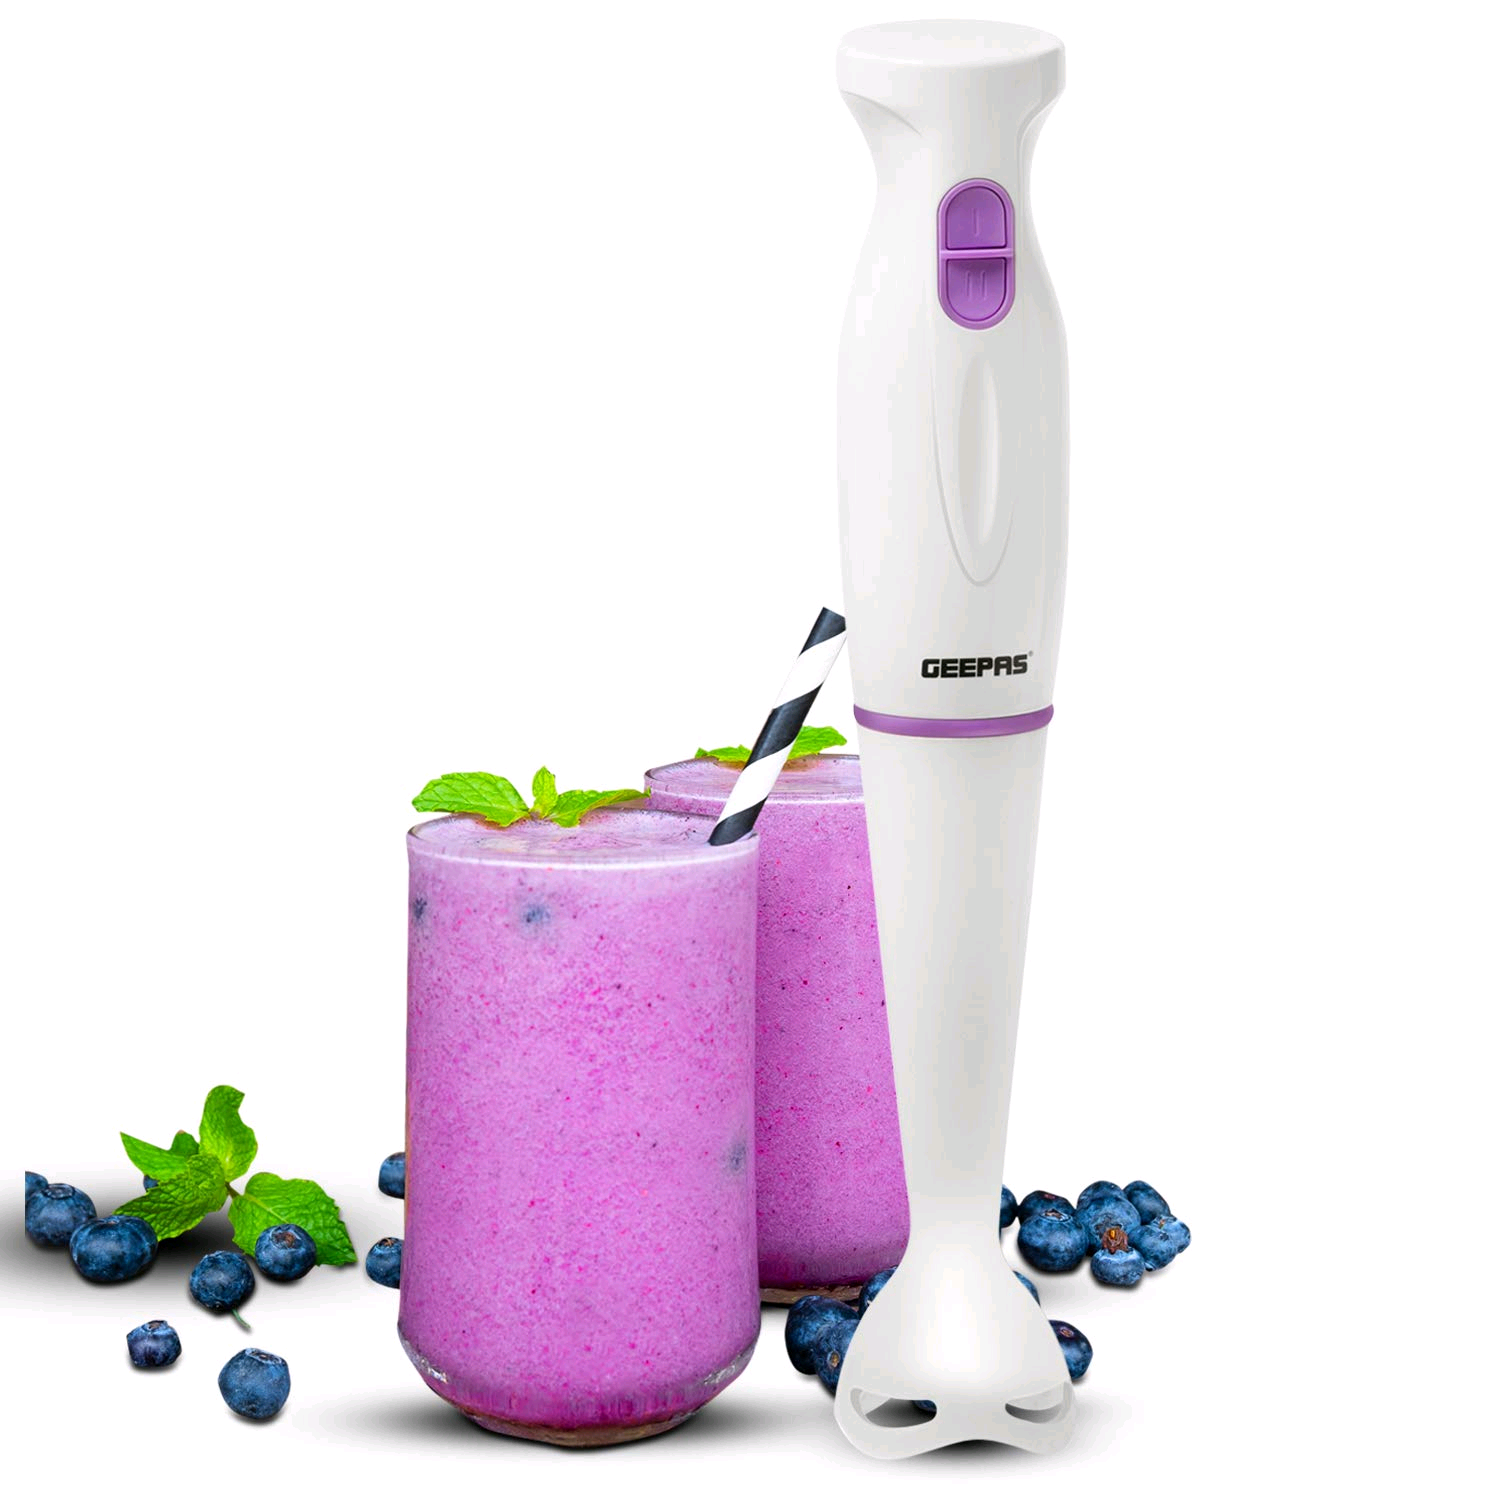 Geepas GHB43015UK Hand Blender 200W